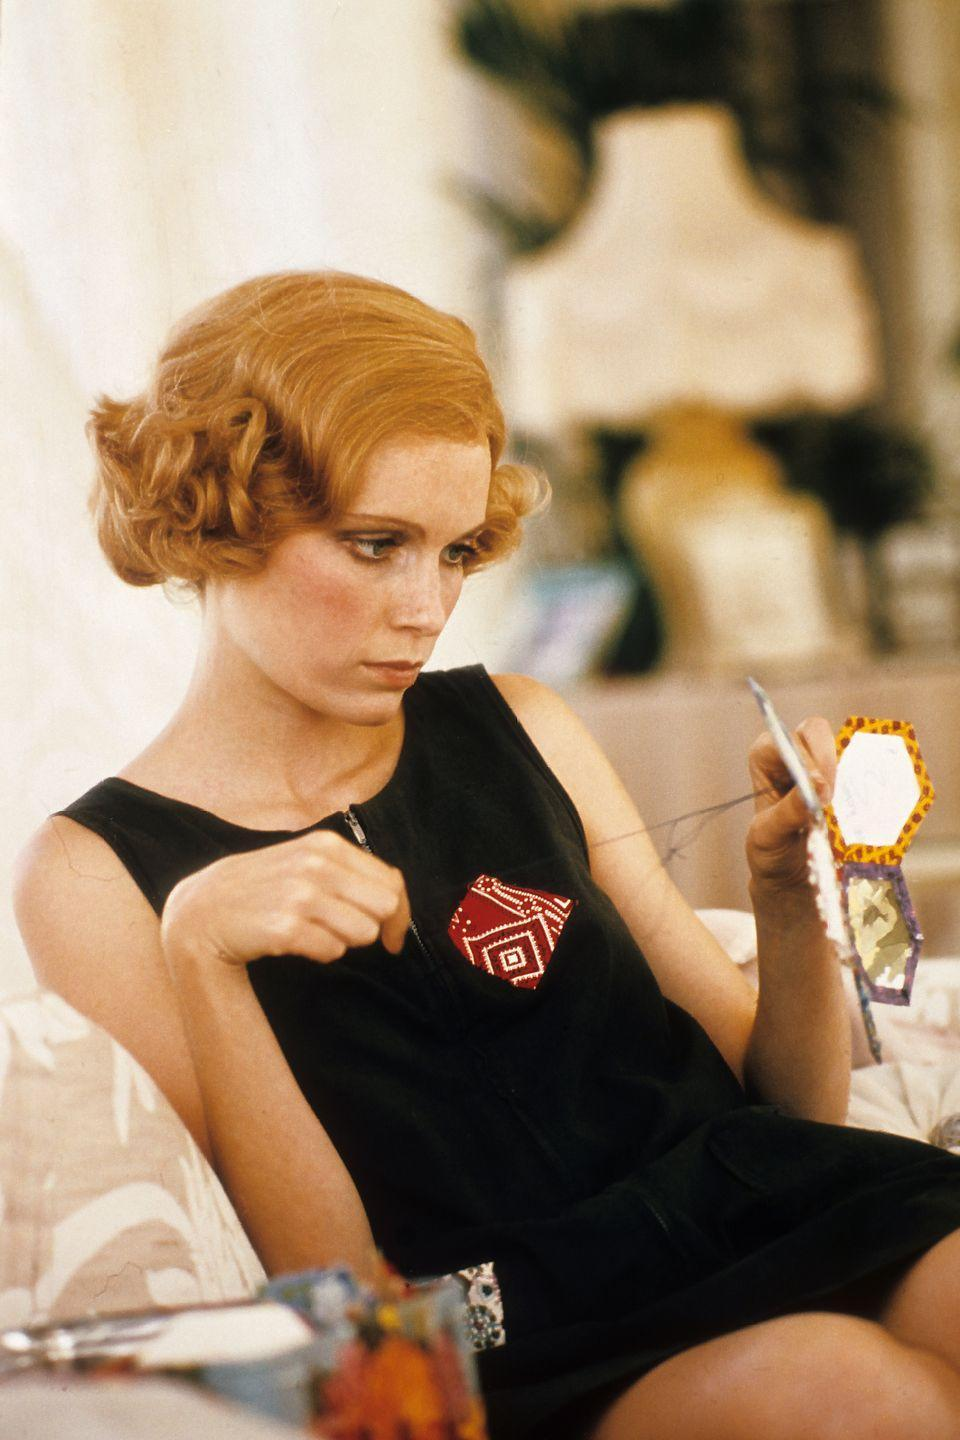 """<p>In-between scenes of <em>The Great Gatsby</em>, Farrow needlepoints on-set. Although the actress was renowned for her role in the film, the part of Daisy was first offered to Natalie Wood, <a href=""""https://www.imdb.com/title/tt0071577/trivia#:~:text=Natalie%20Wood%20was%20offered%20the,idea%20and%20lost%20her%20chance.&text=Sam%20Waterston%20is%20a%20graduate,as%20his%20character%20Nick%20Carraway."""" rel=""""nofollow noopener"""" target=""""_blank"""" data-ylk=""""slk:who turned it down"""" class=""""link rapid-noclick-resp"""">who turned it down</a>.</p>"""